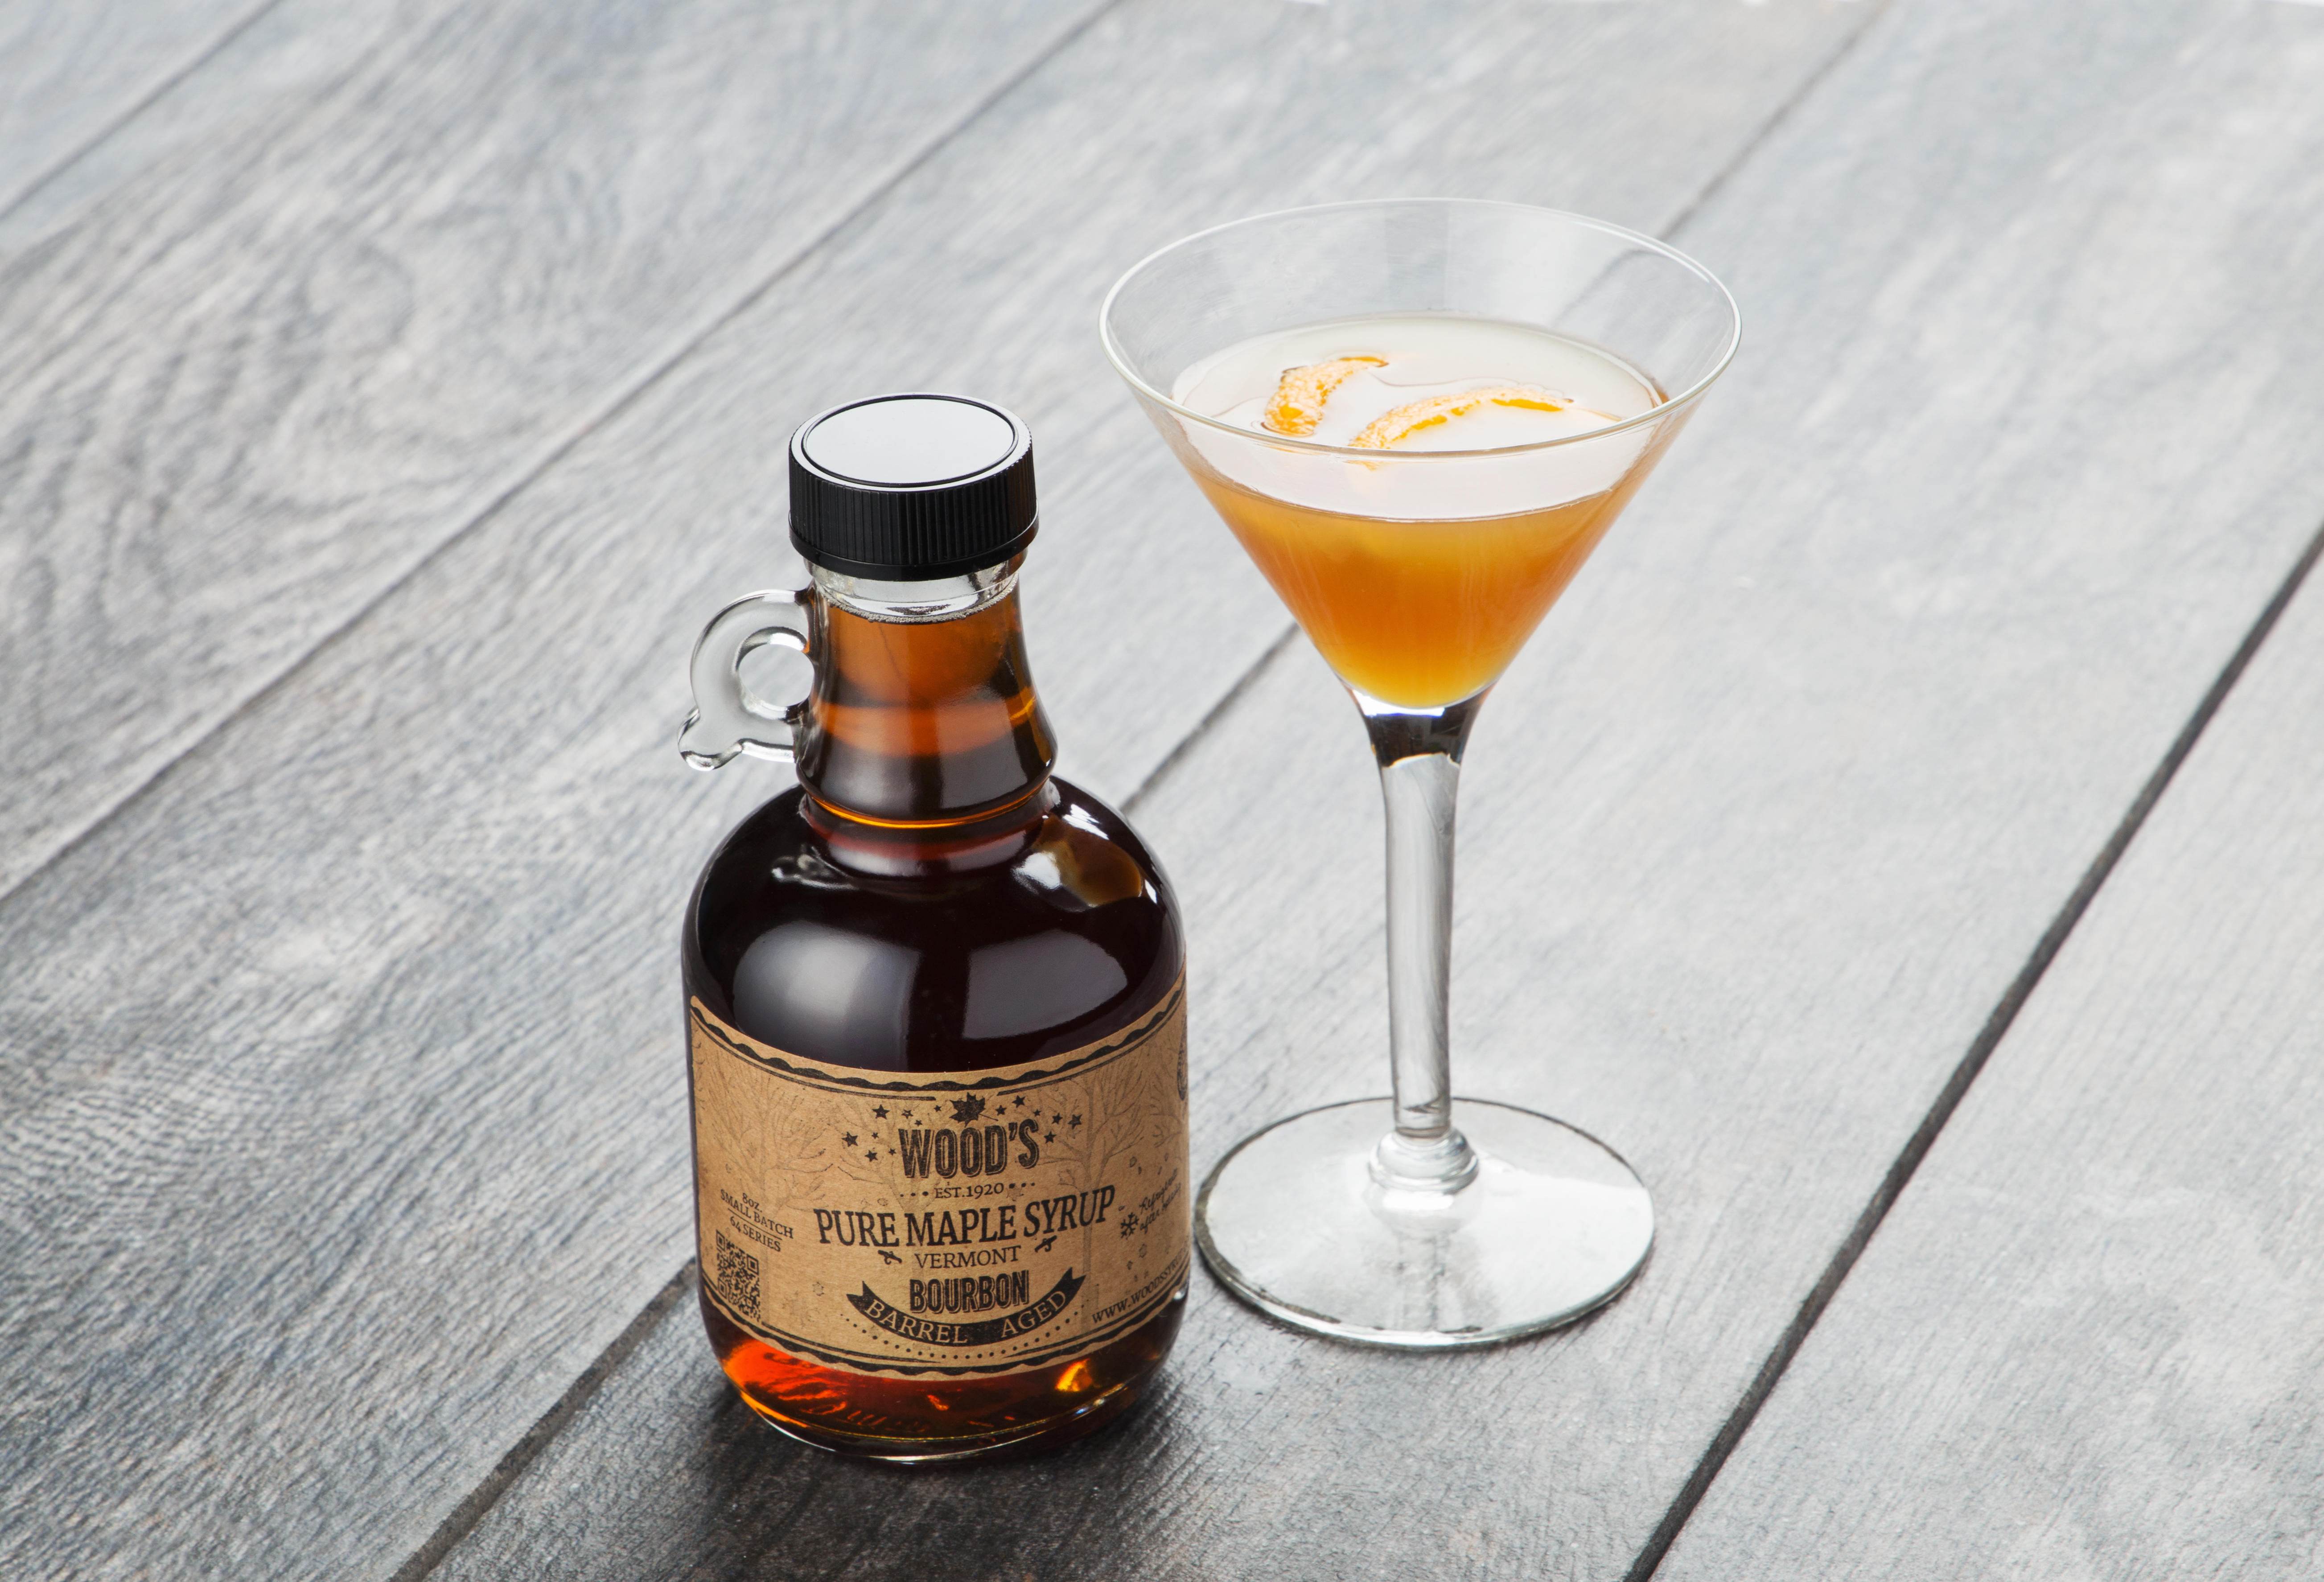 A bottle of Bourbon-infused Wood's Maple syrup sits next to a martini